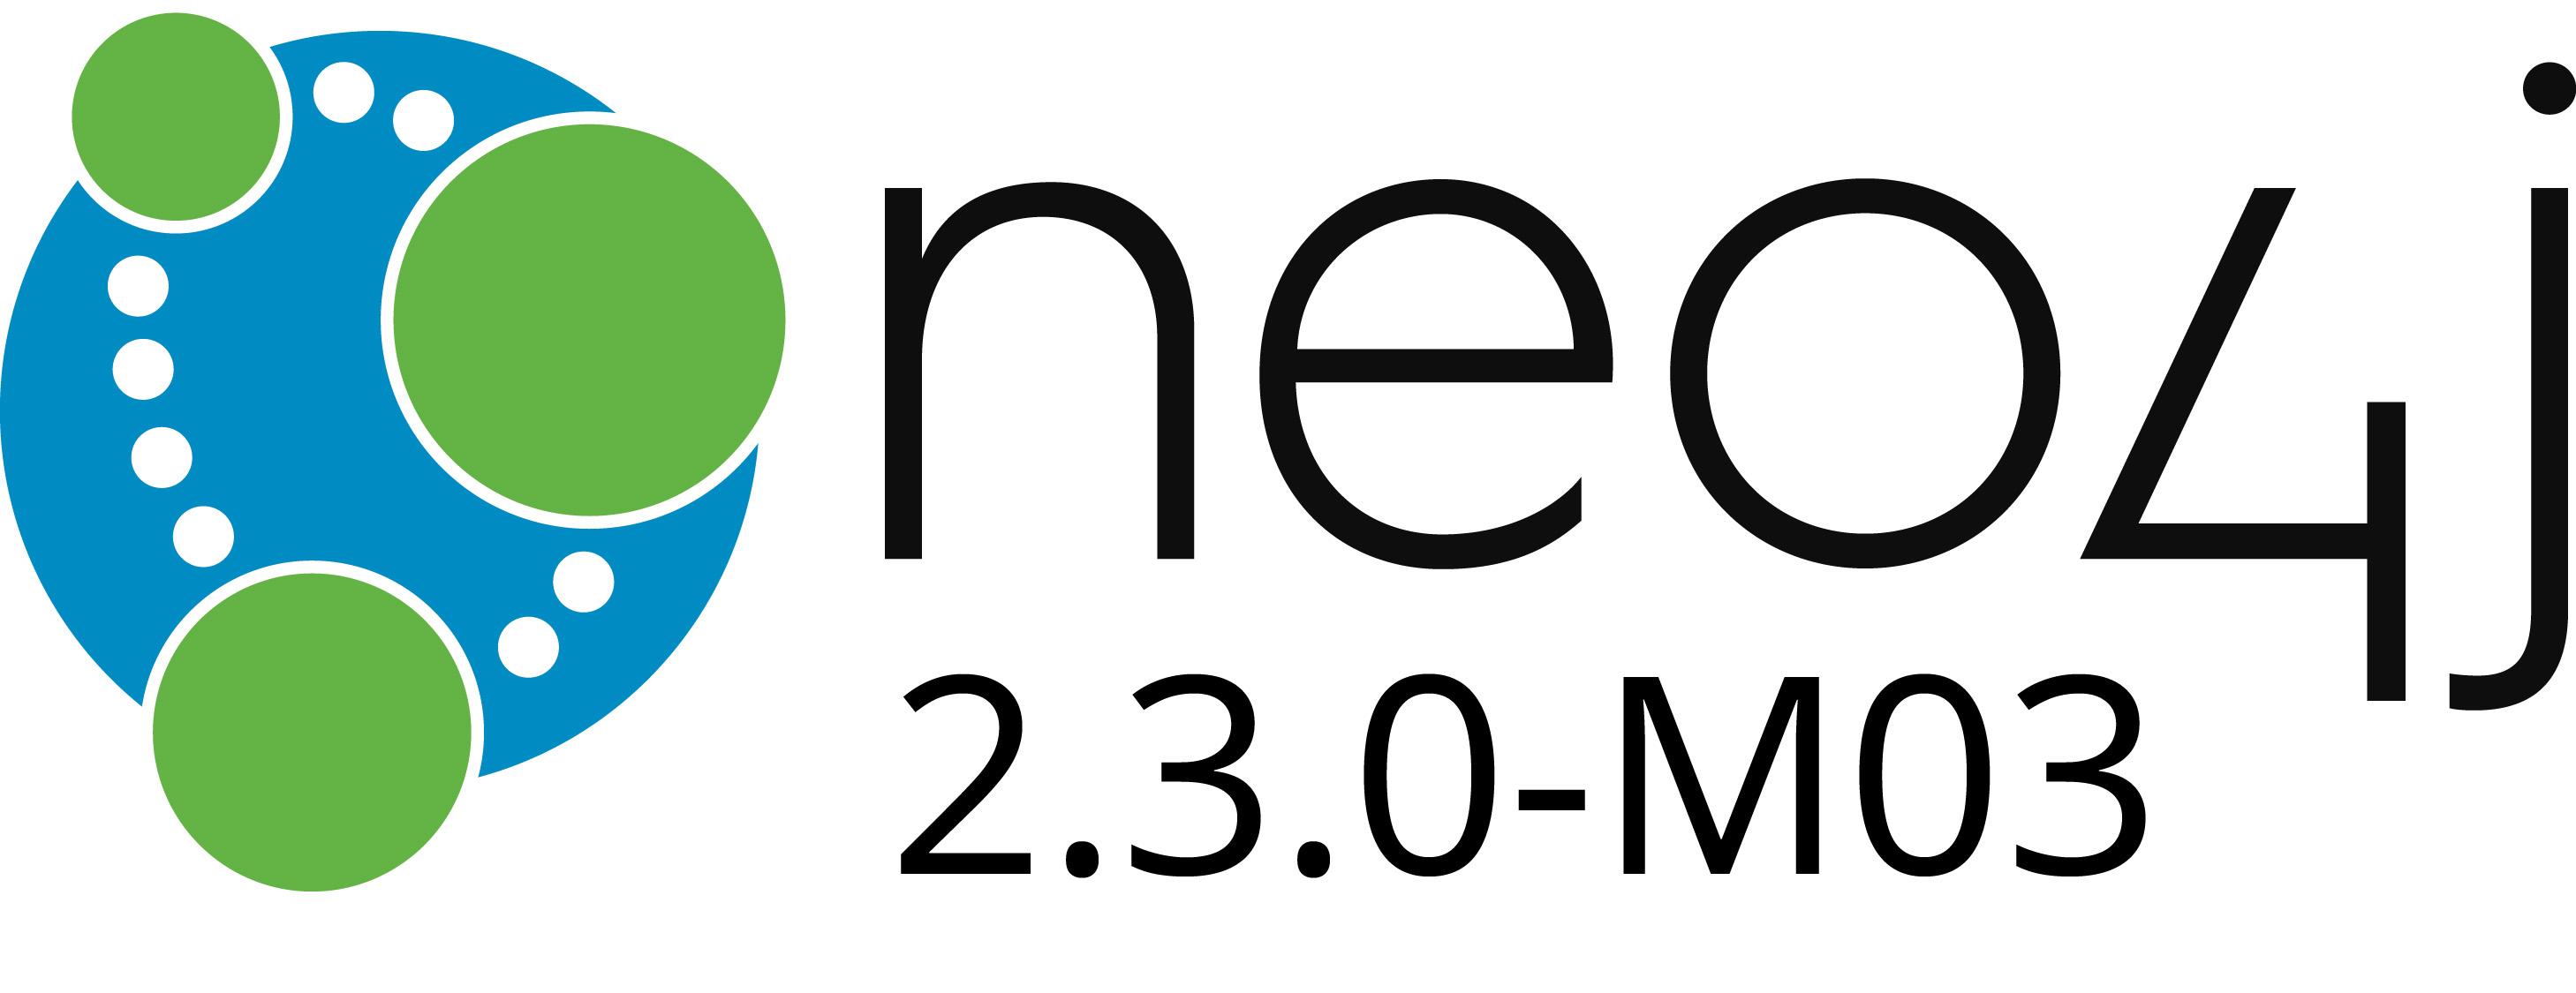 Discover the New Features in the Latest Milestone Release of Neo4j 2.3 now in the Beta Program